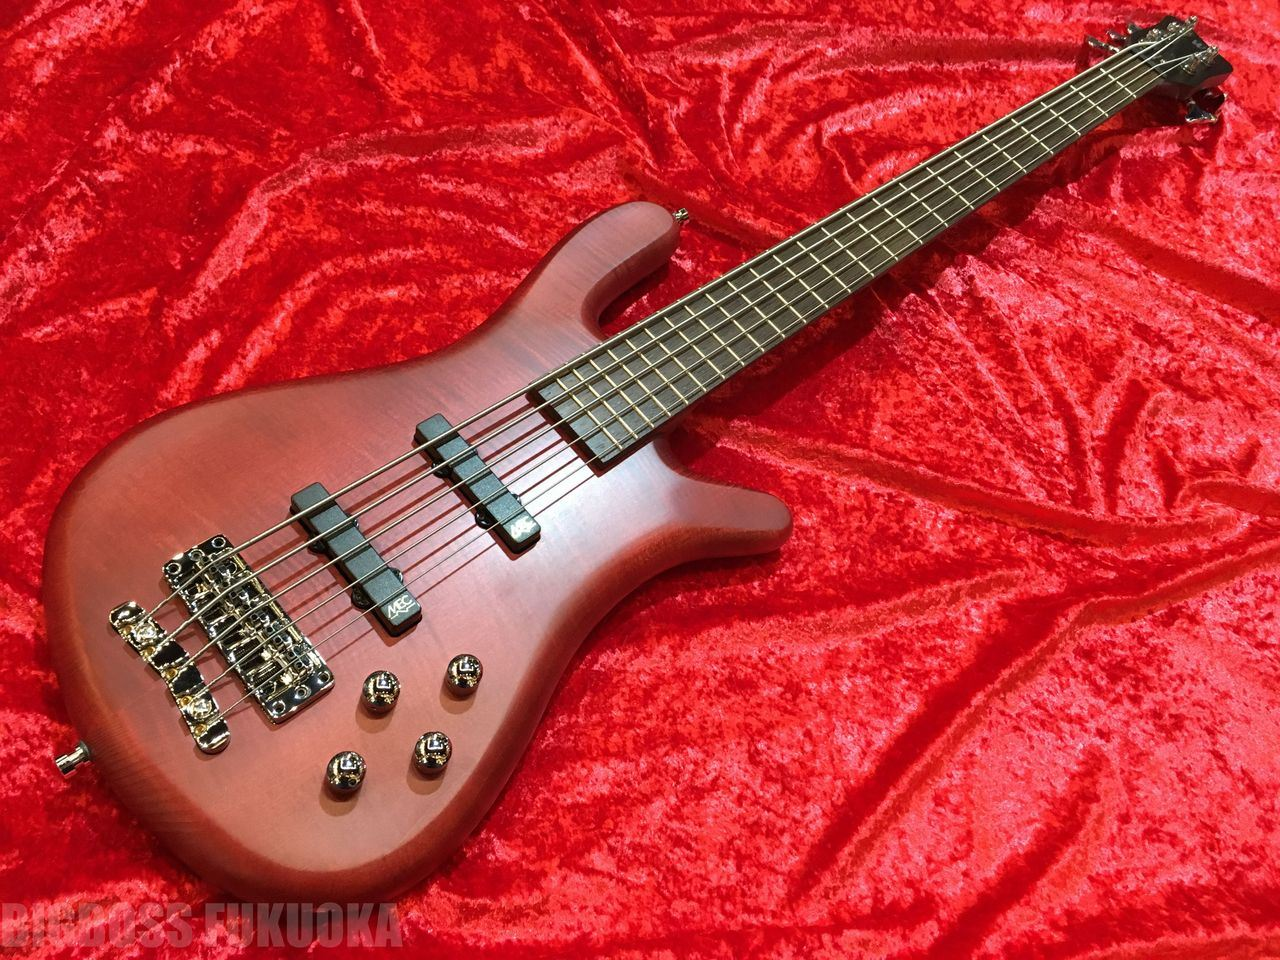 【ポイント10倍】【即納可能】Warwick Team Built Streamer LX5 OFC (Burgundy Red) 福岡店